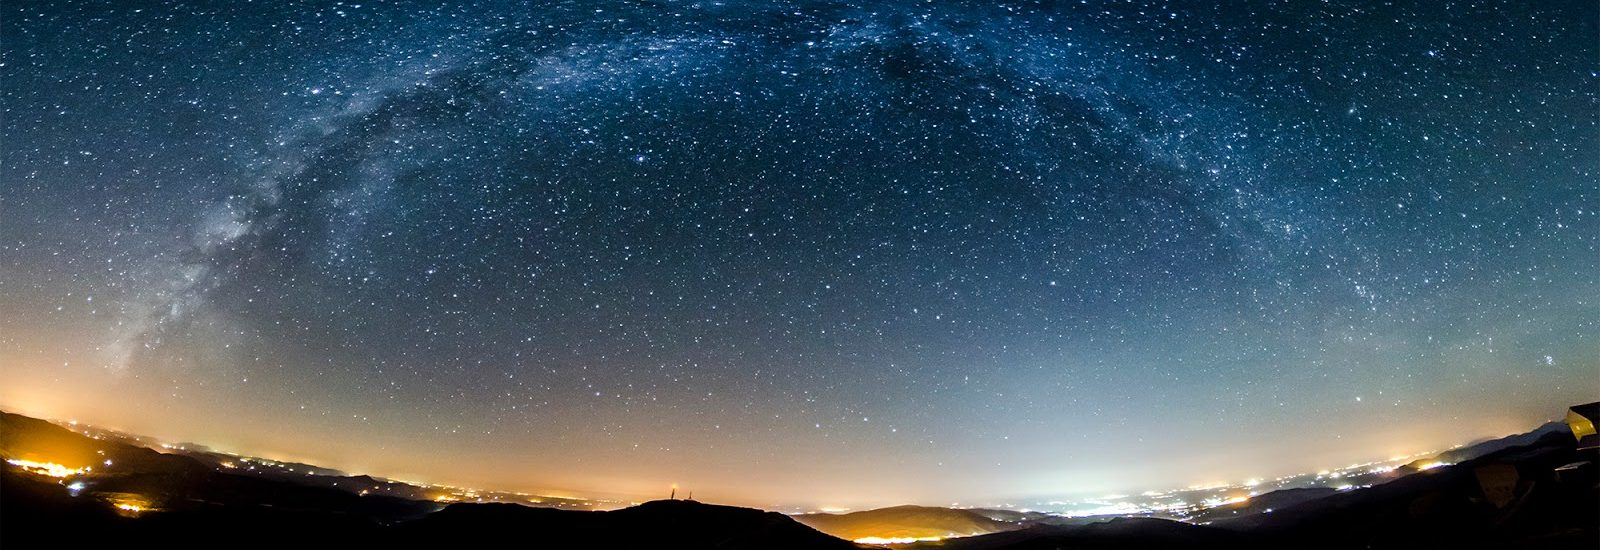 via-lactea-star-light-España